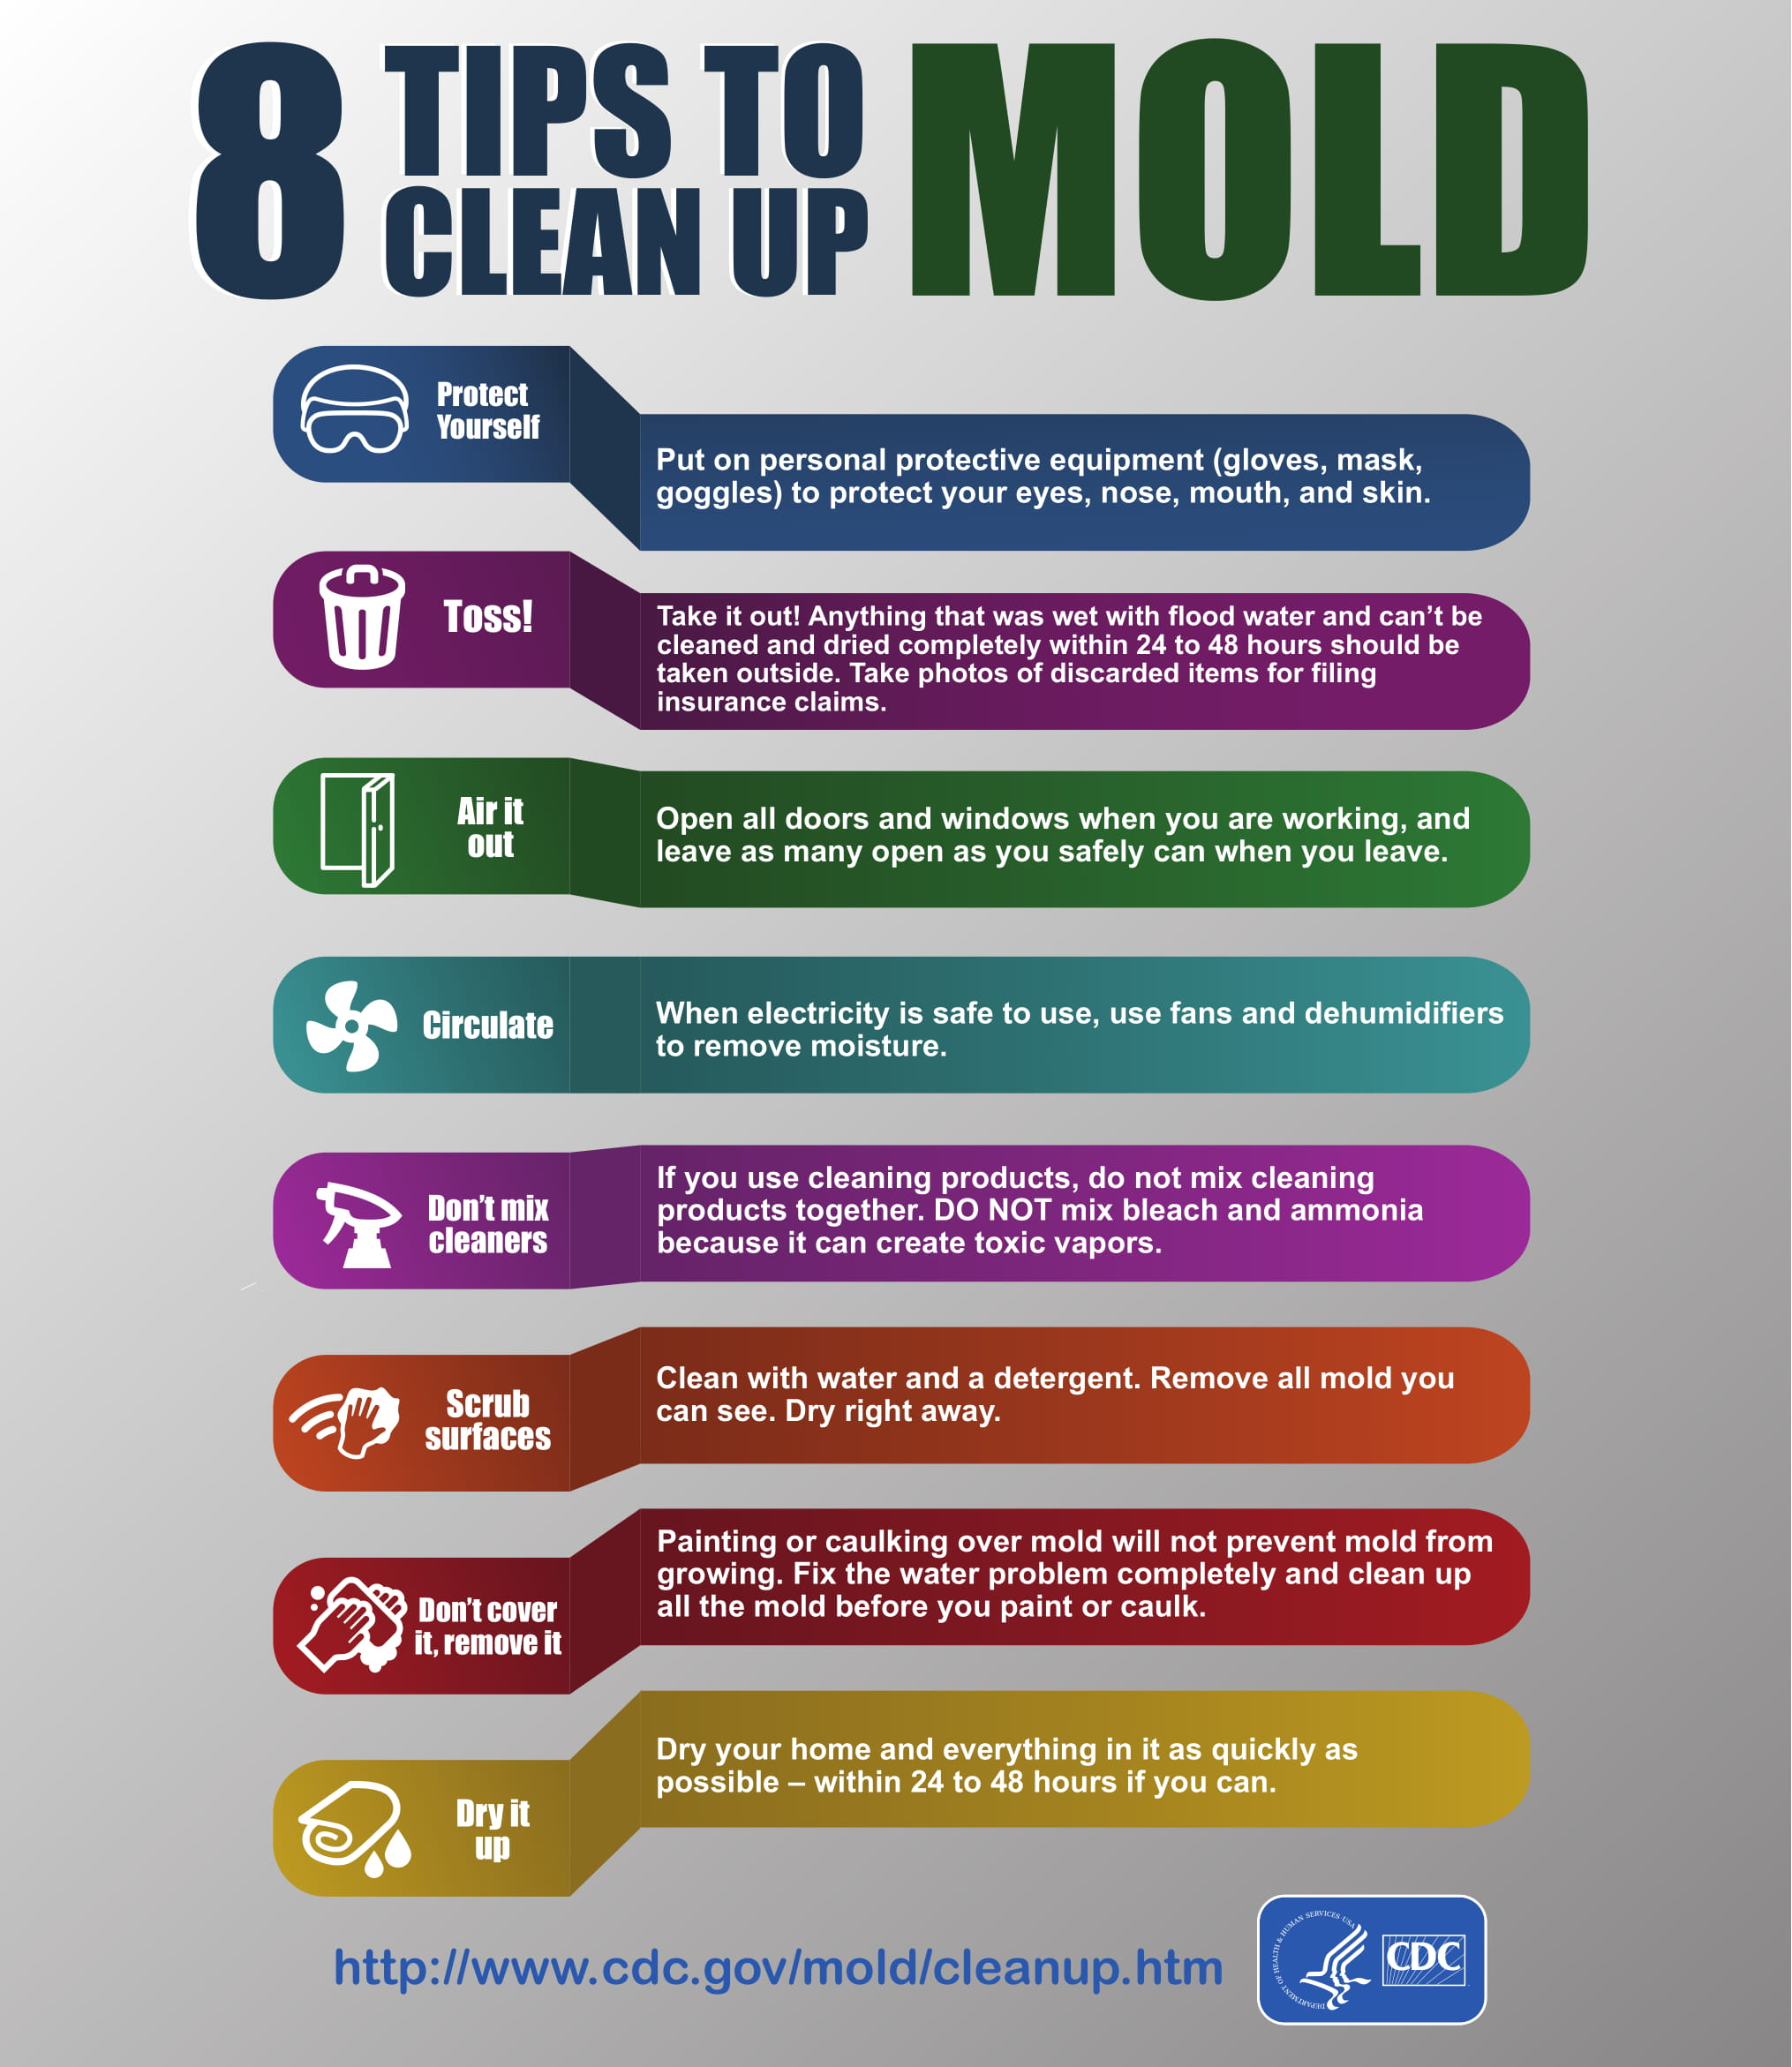 Aside From Visible Mold Other Indications Of Dampness Problems Include Odor Water Stains Ed Wallpaper Wet Bats And So On